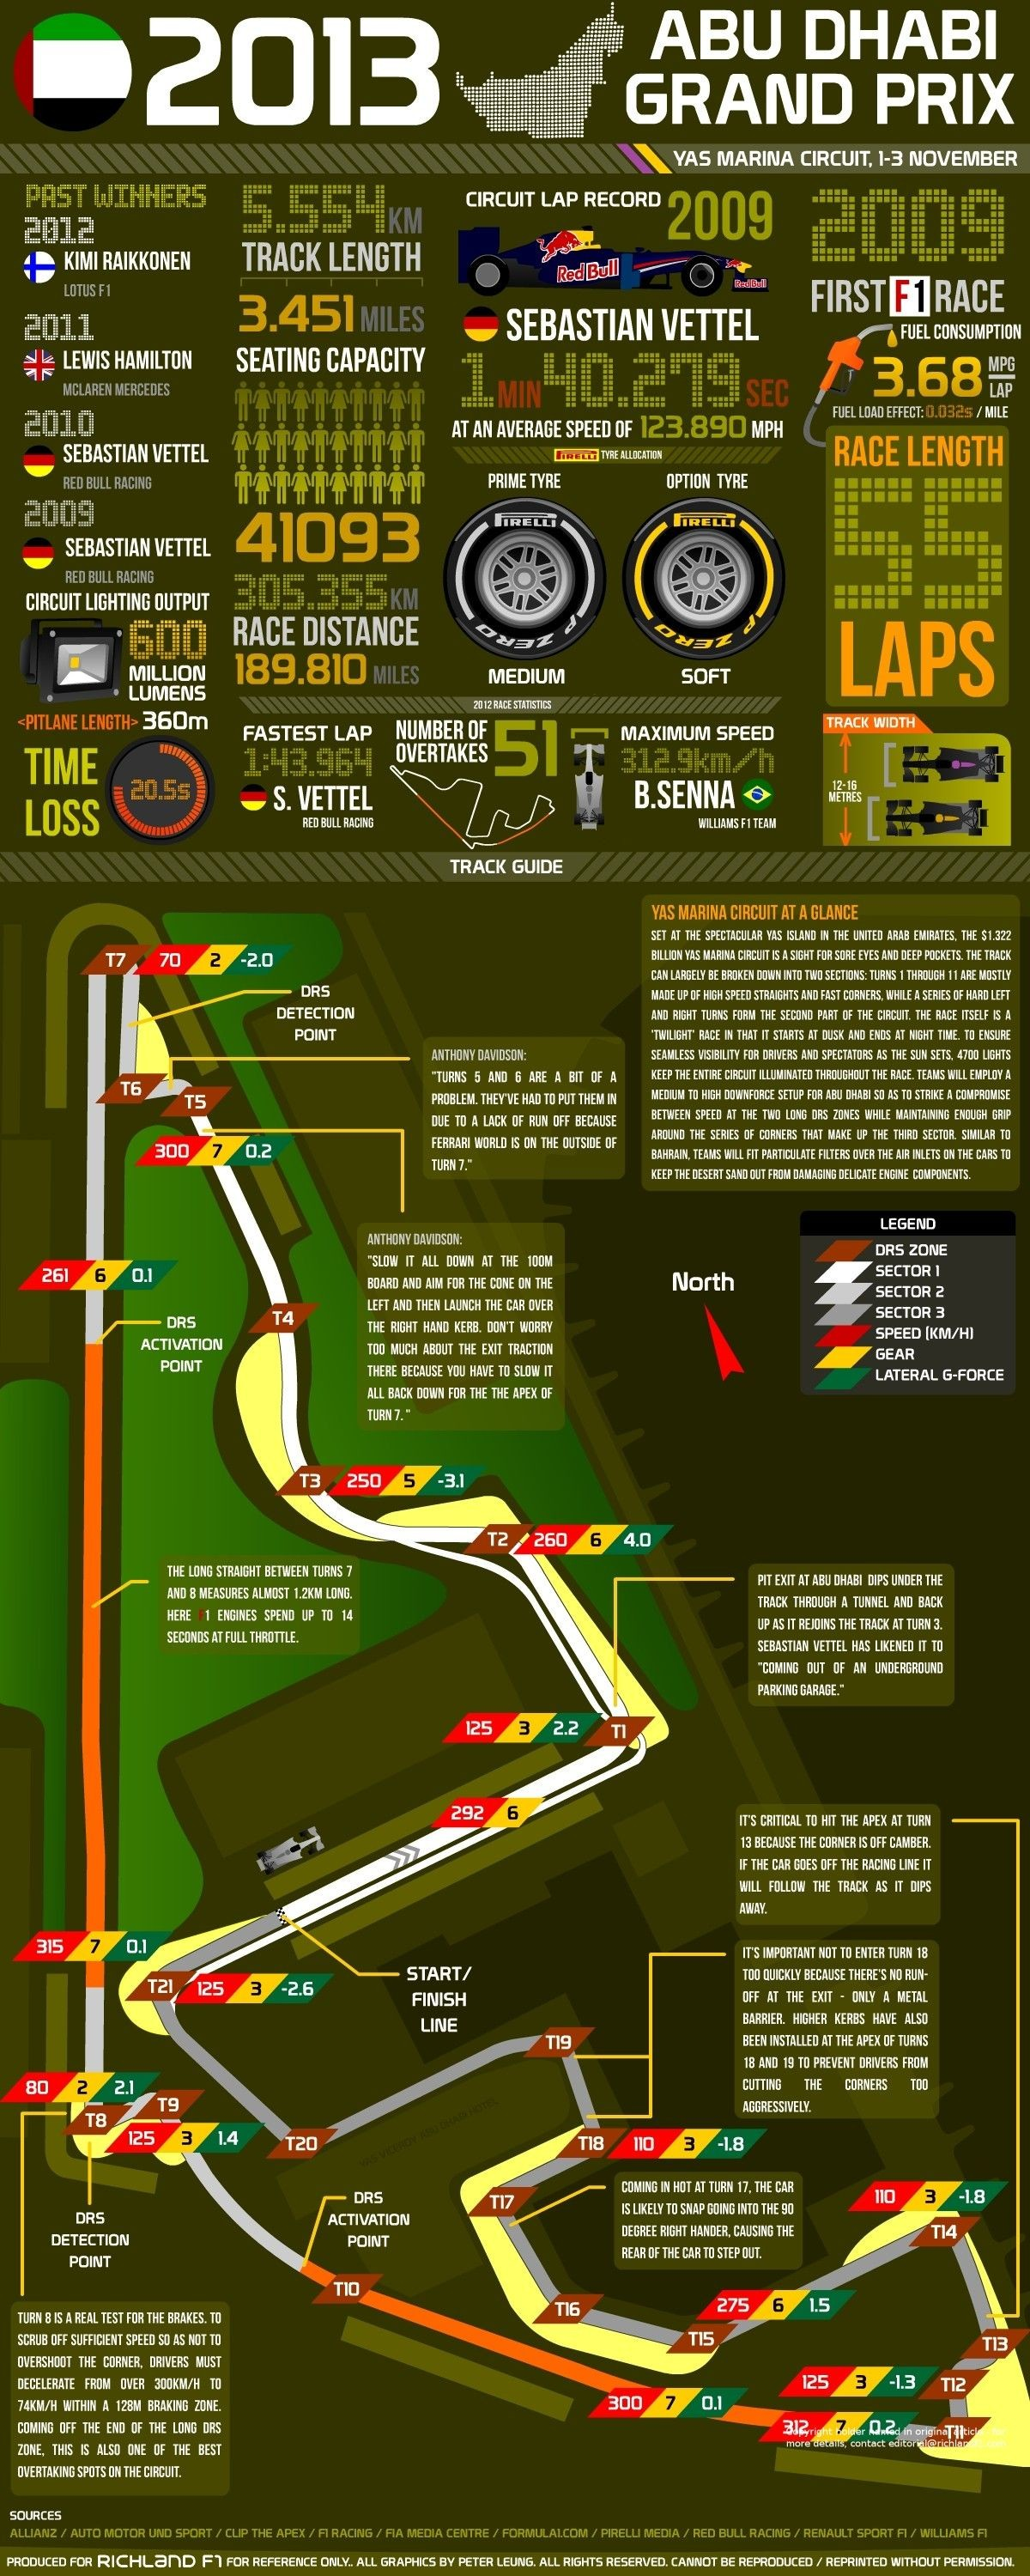 F1 Car Diagram 2013 Abu Dhabi Grand Prix Facts & Figures F1 Of F1 Car Diagram